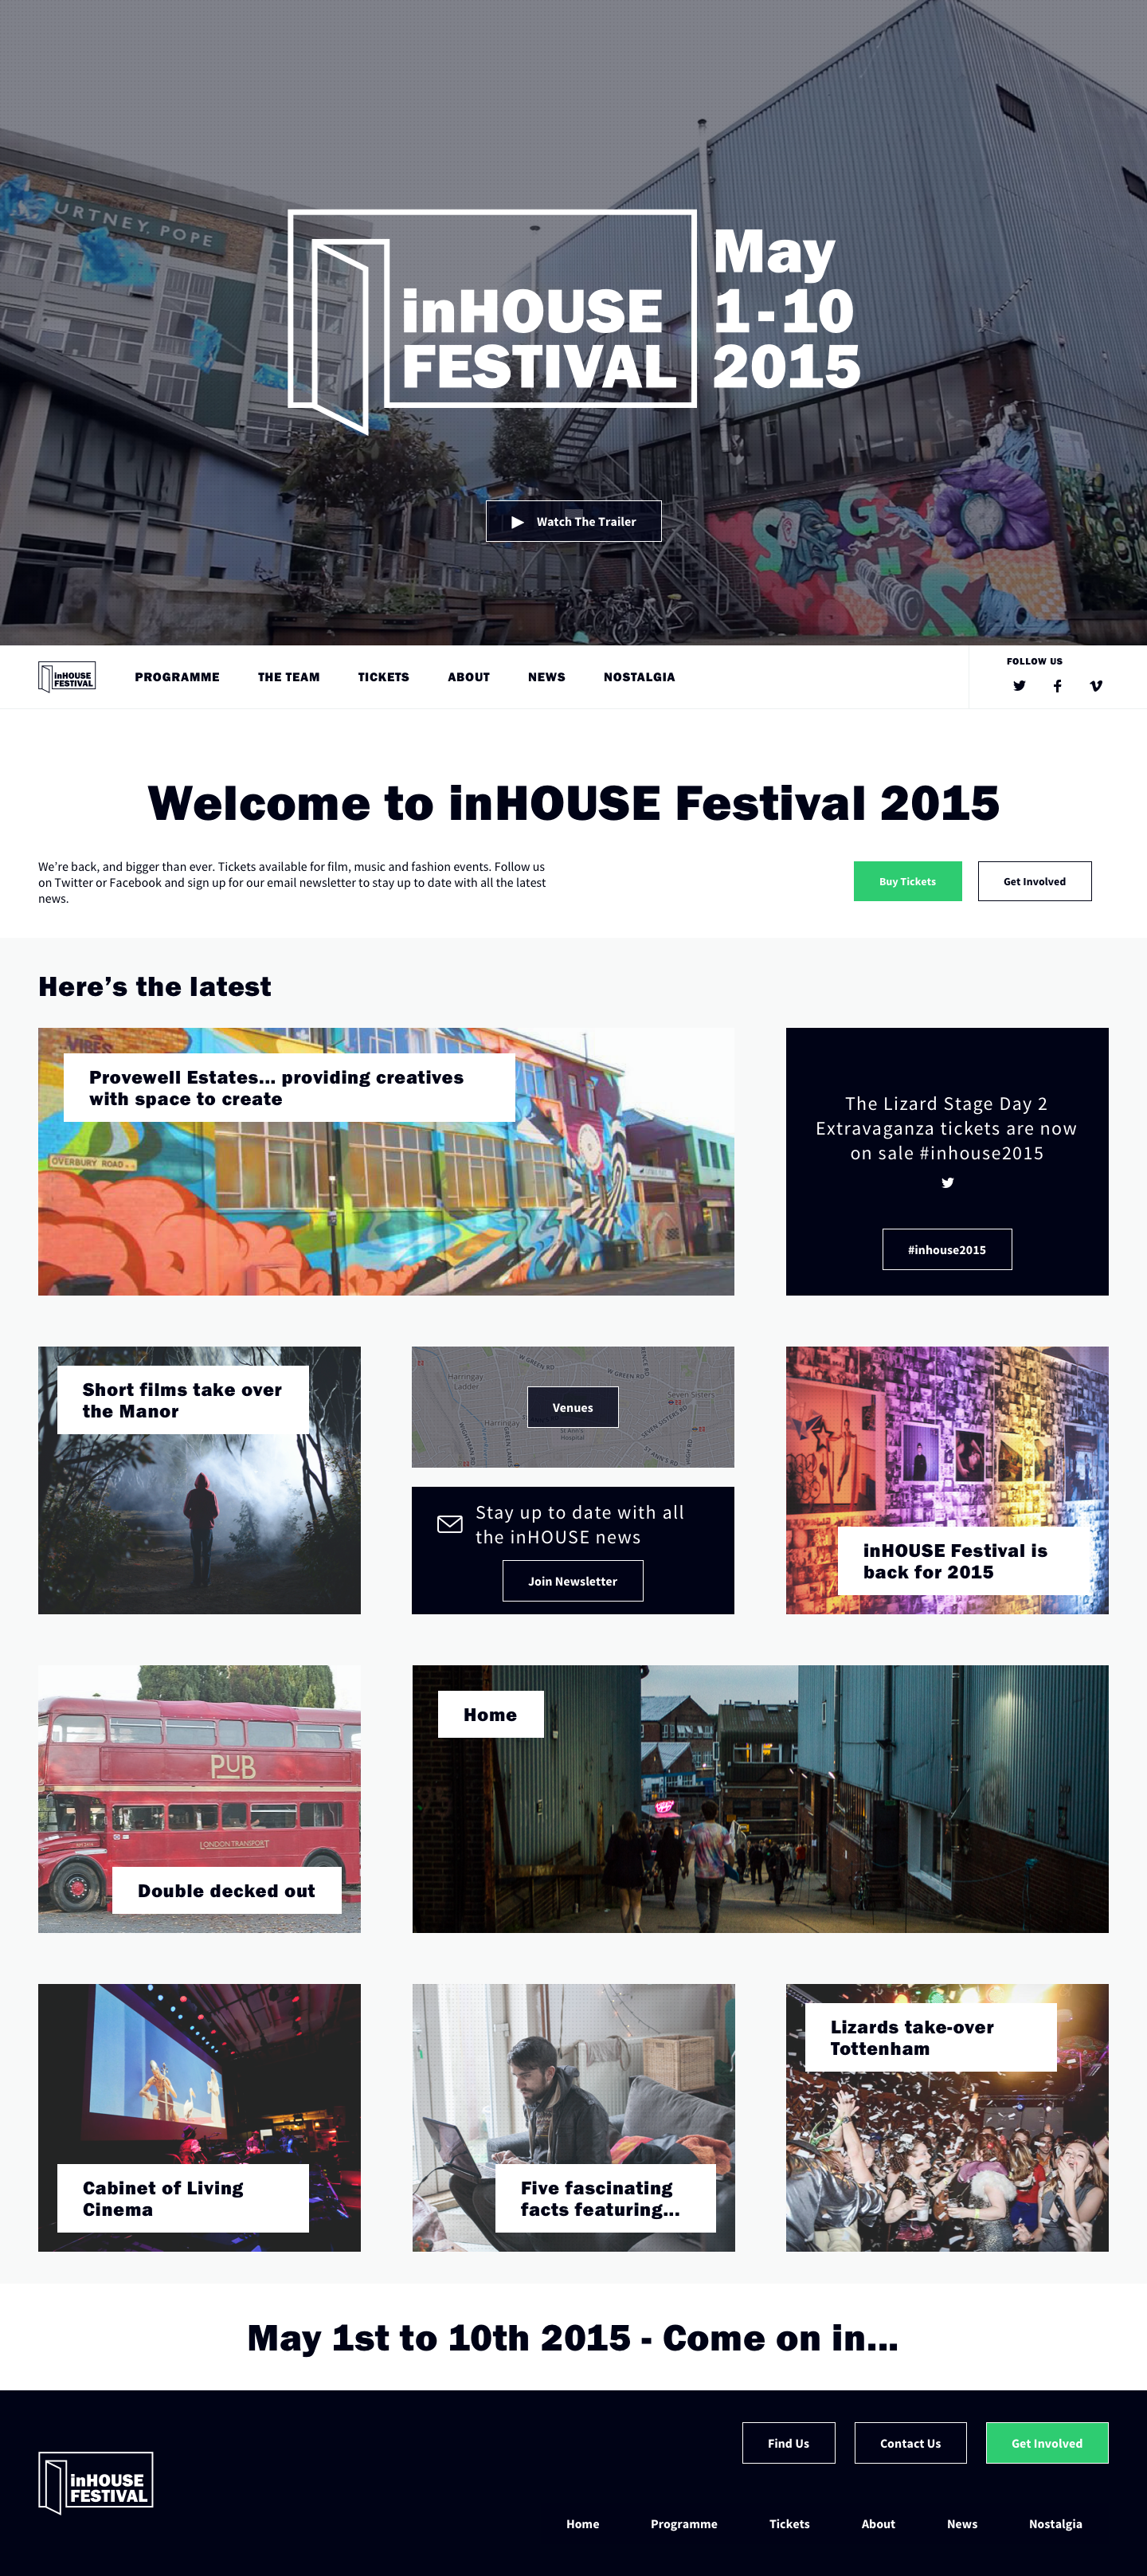 Screenshot of the inHouse Festival landing page